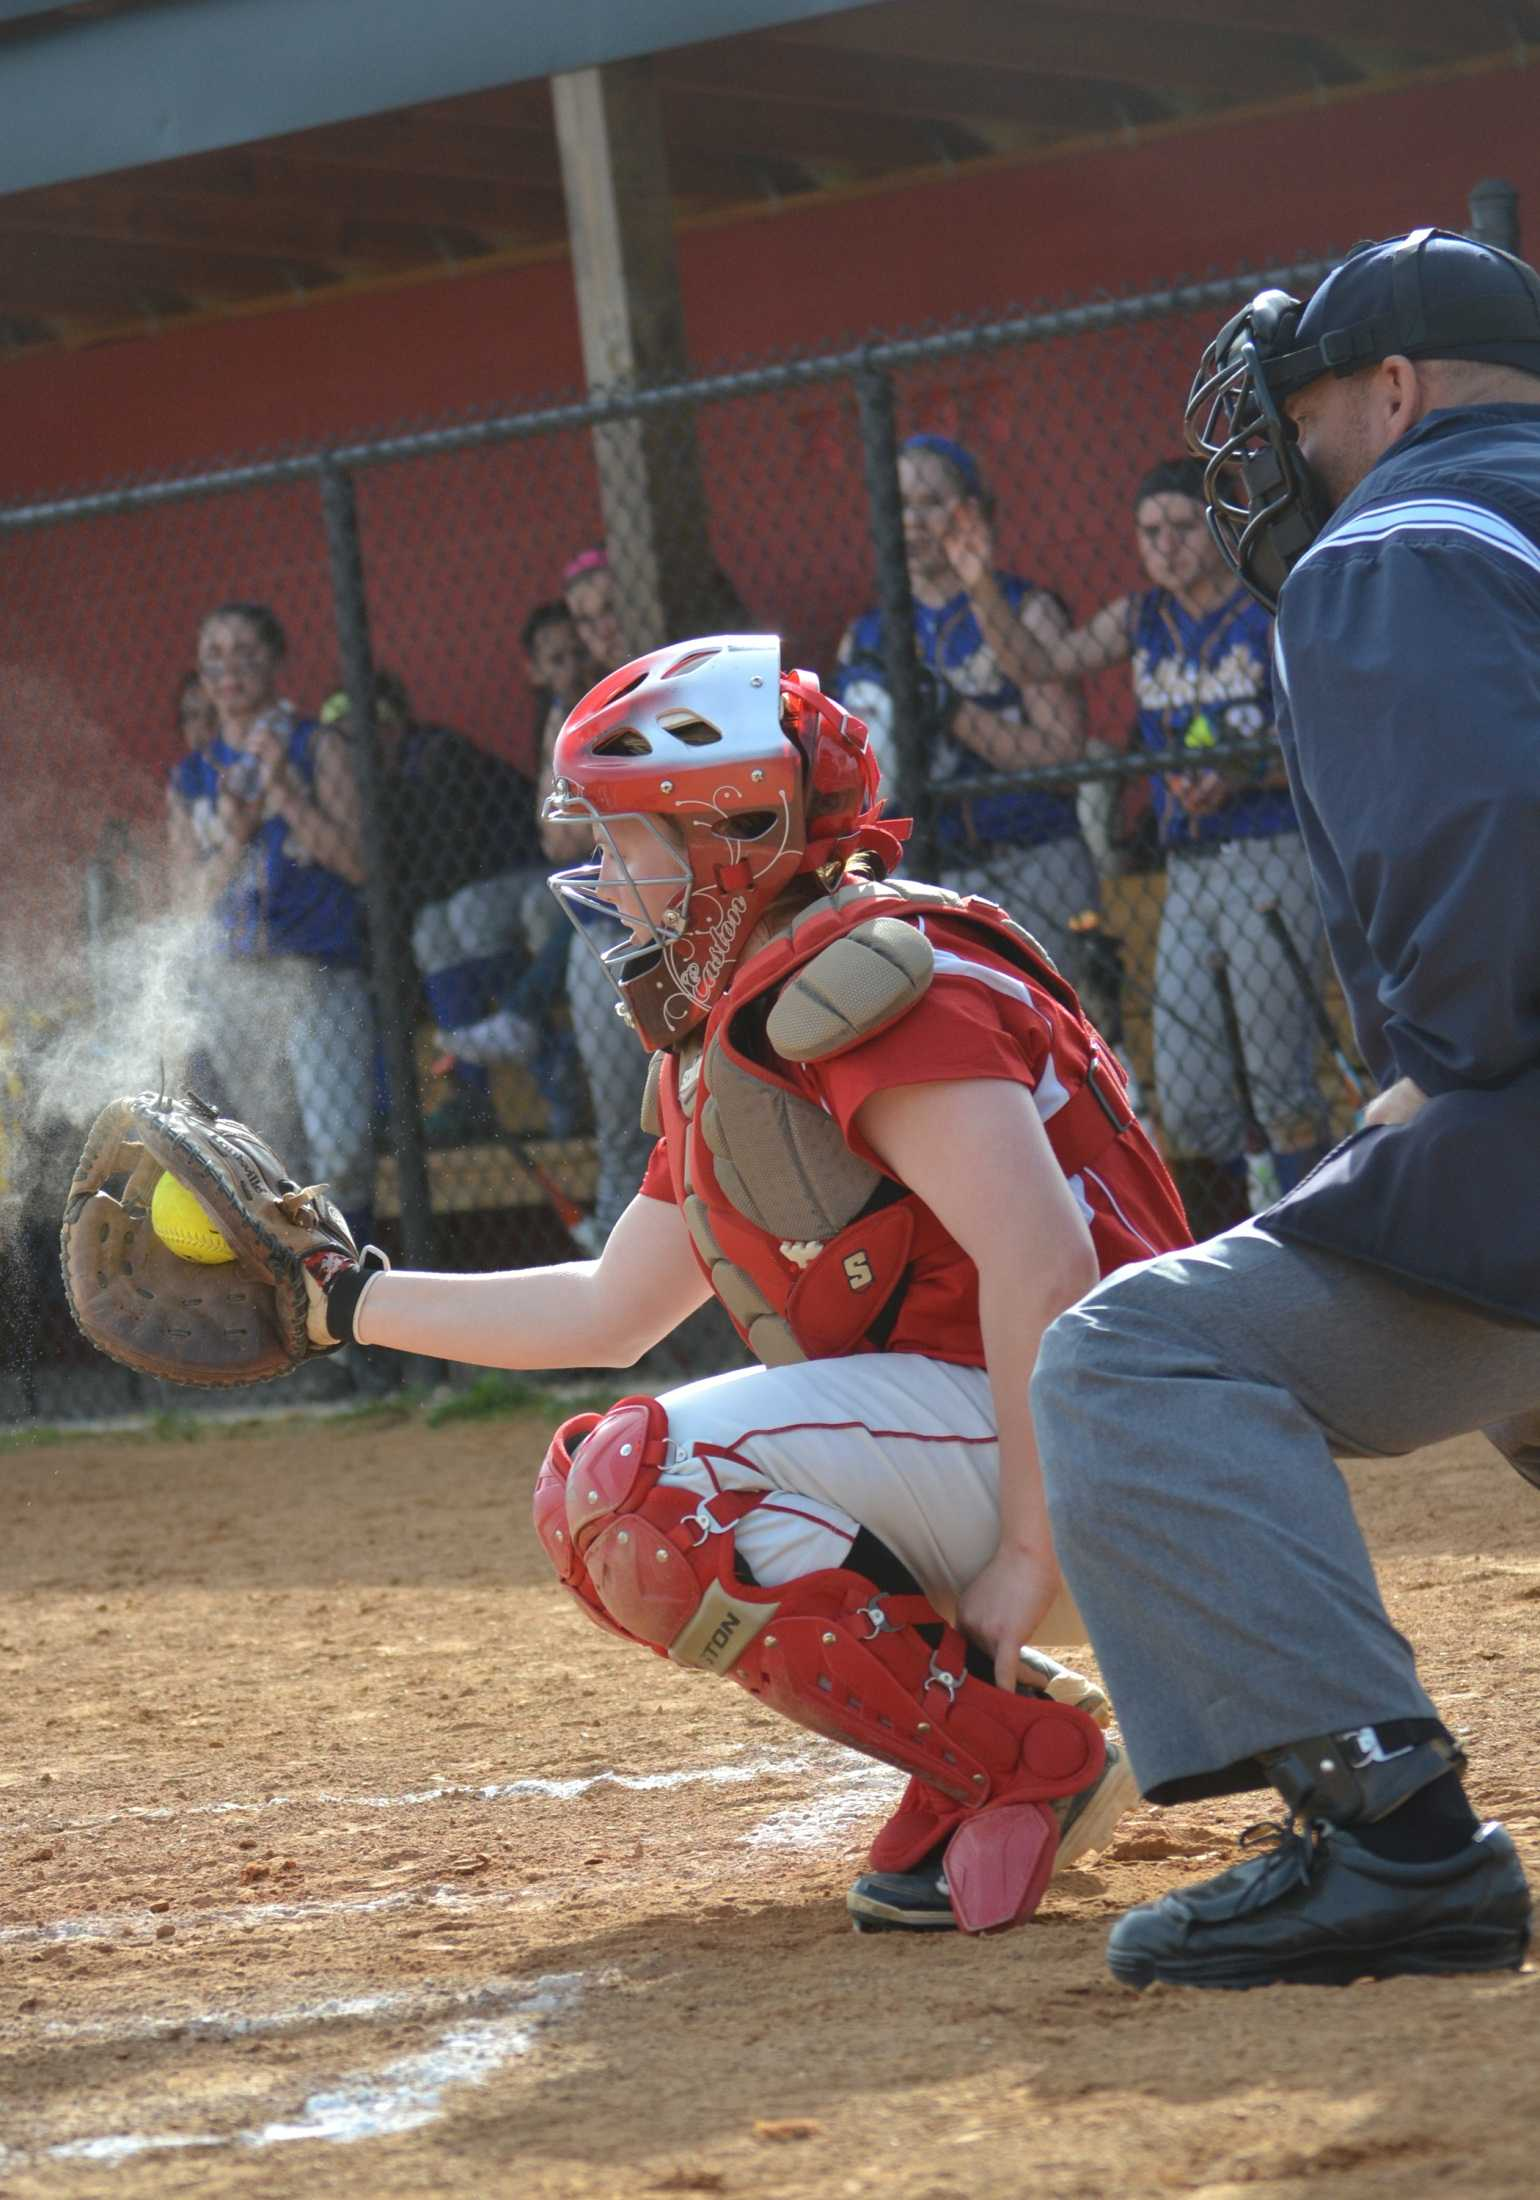 Freshman Jordan Specht plays during a game against Walkersville on April 15. The Lancers won with a score of 15-12.